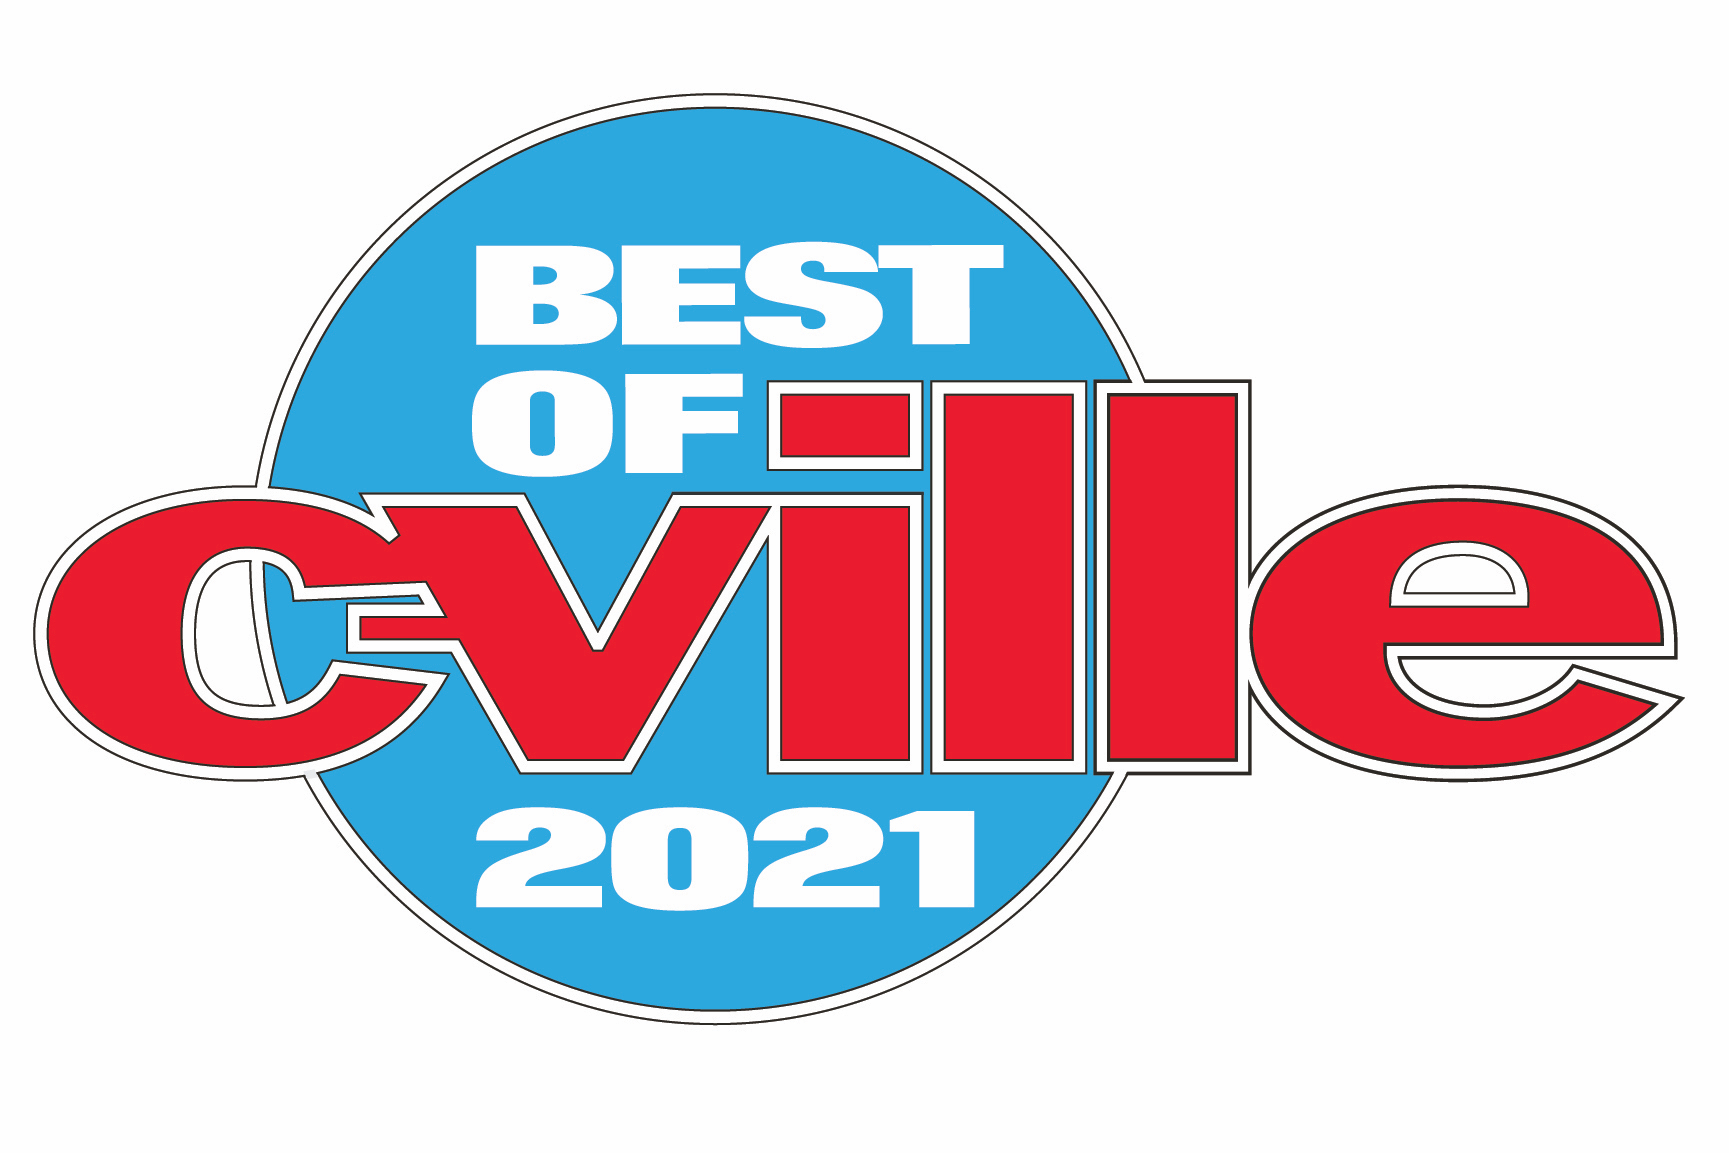 Welcome to the Best of C-VILLE 2021 Final Ballot